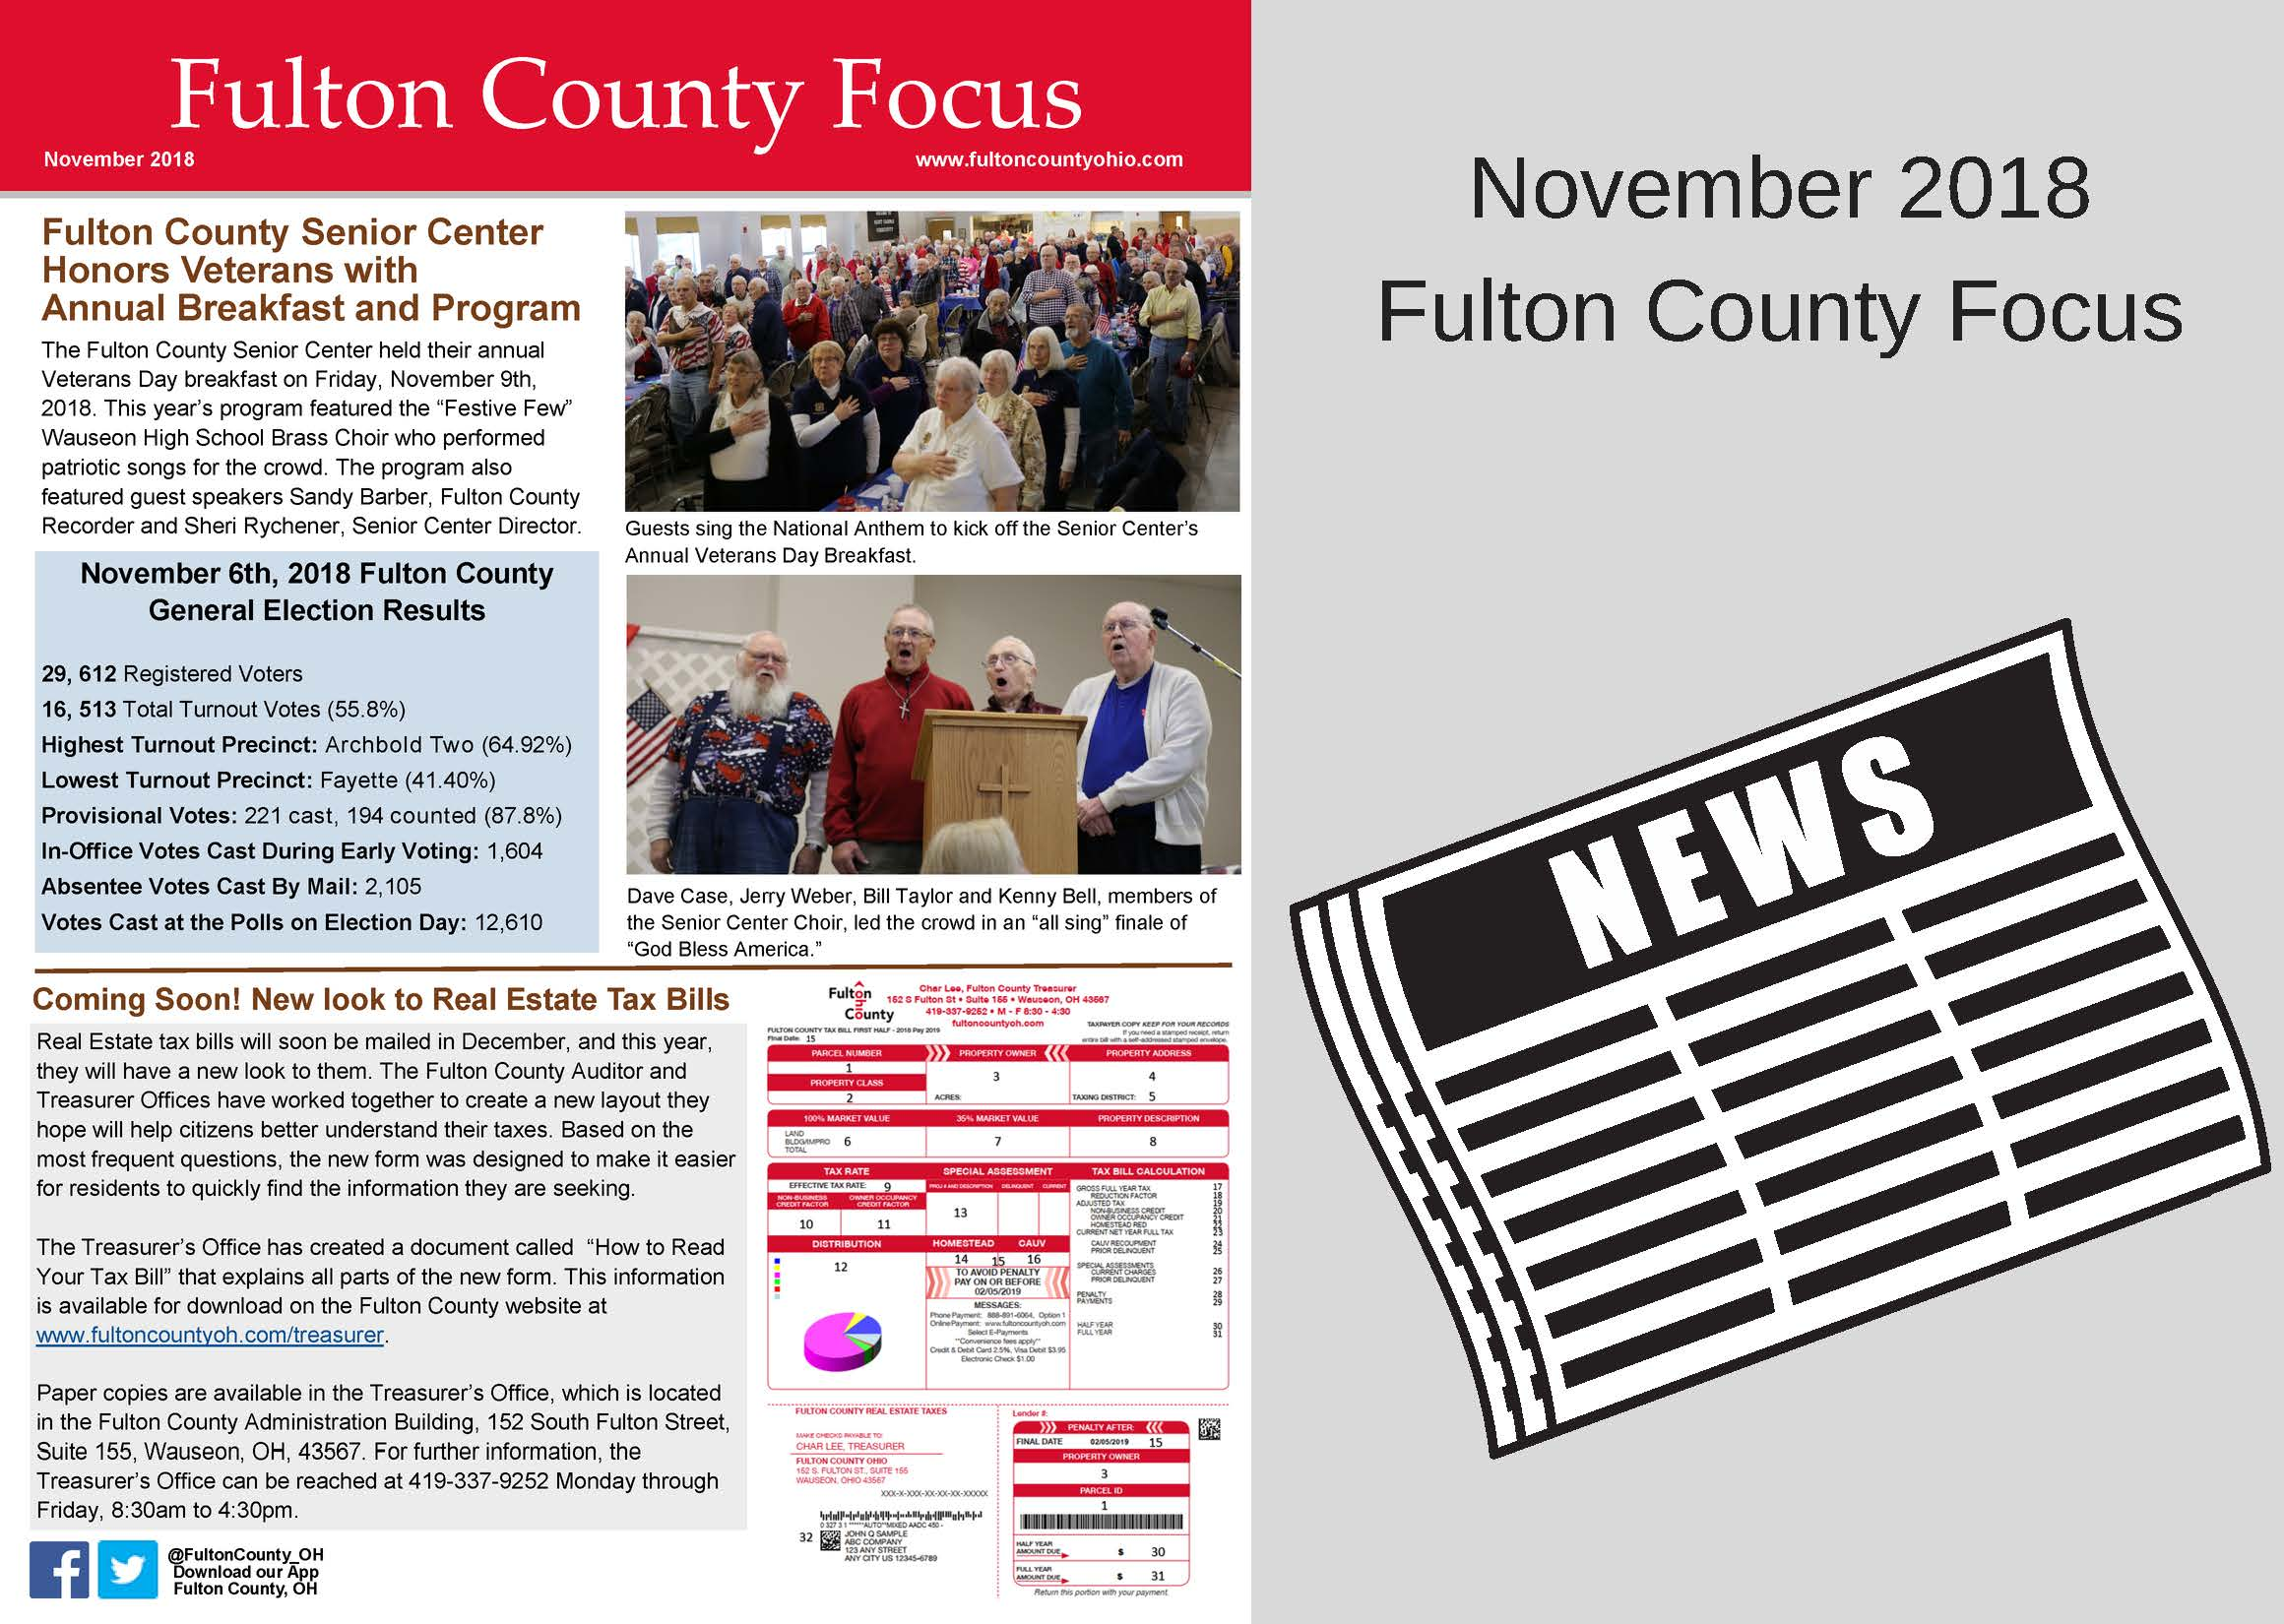 November 2018 Fulton County Focus Website Image